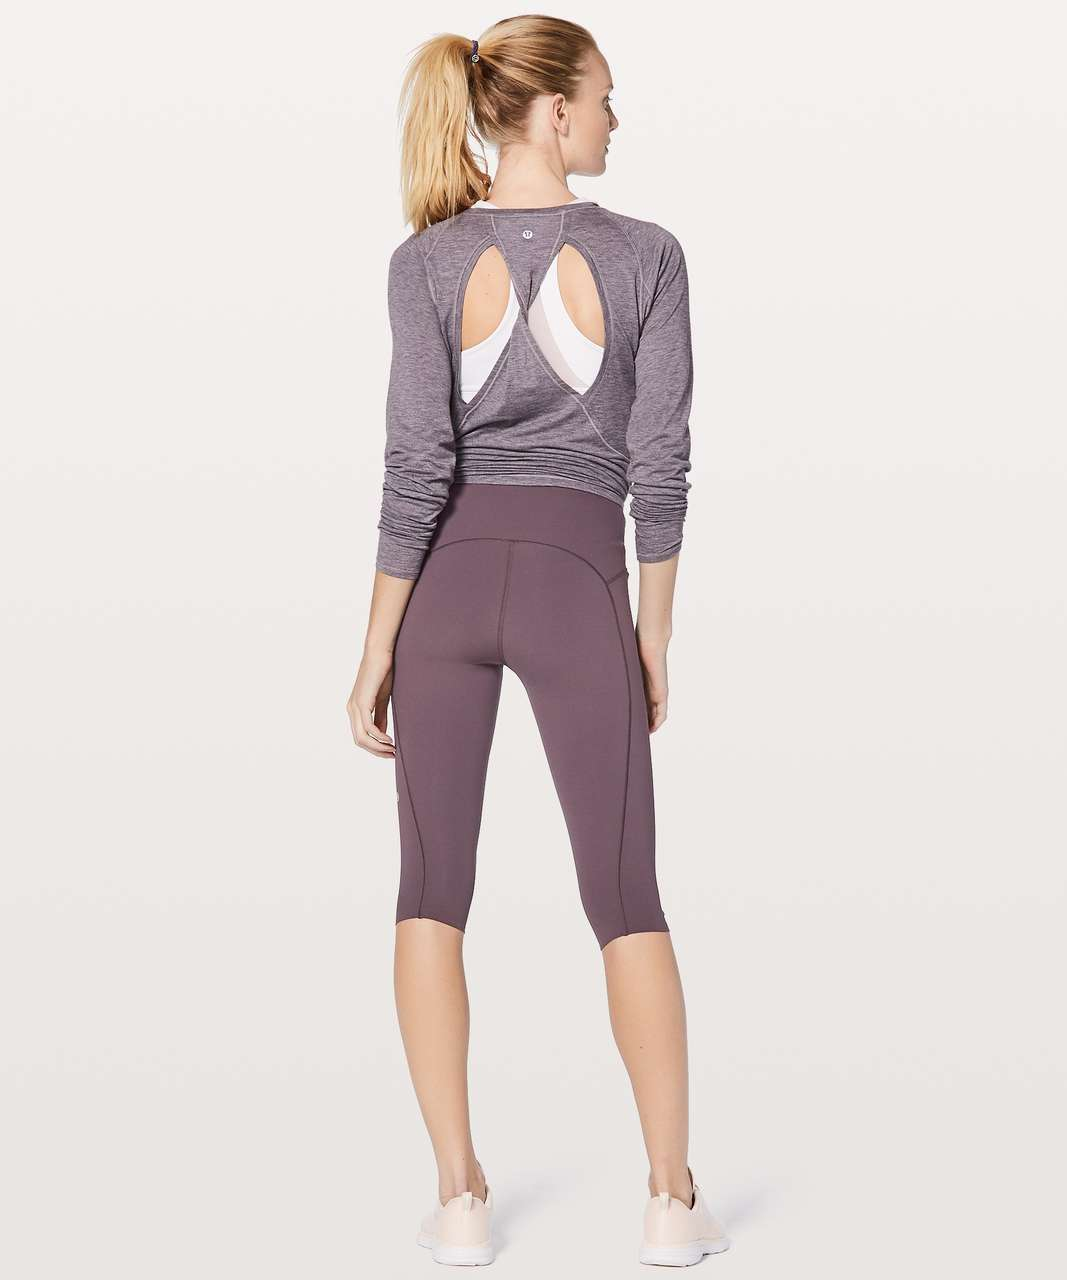 "Lululemon Stop Drop & Squat Crop 17"" - Black Currant"